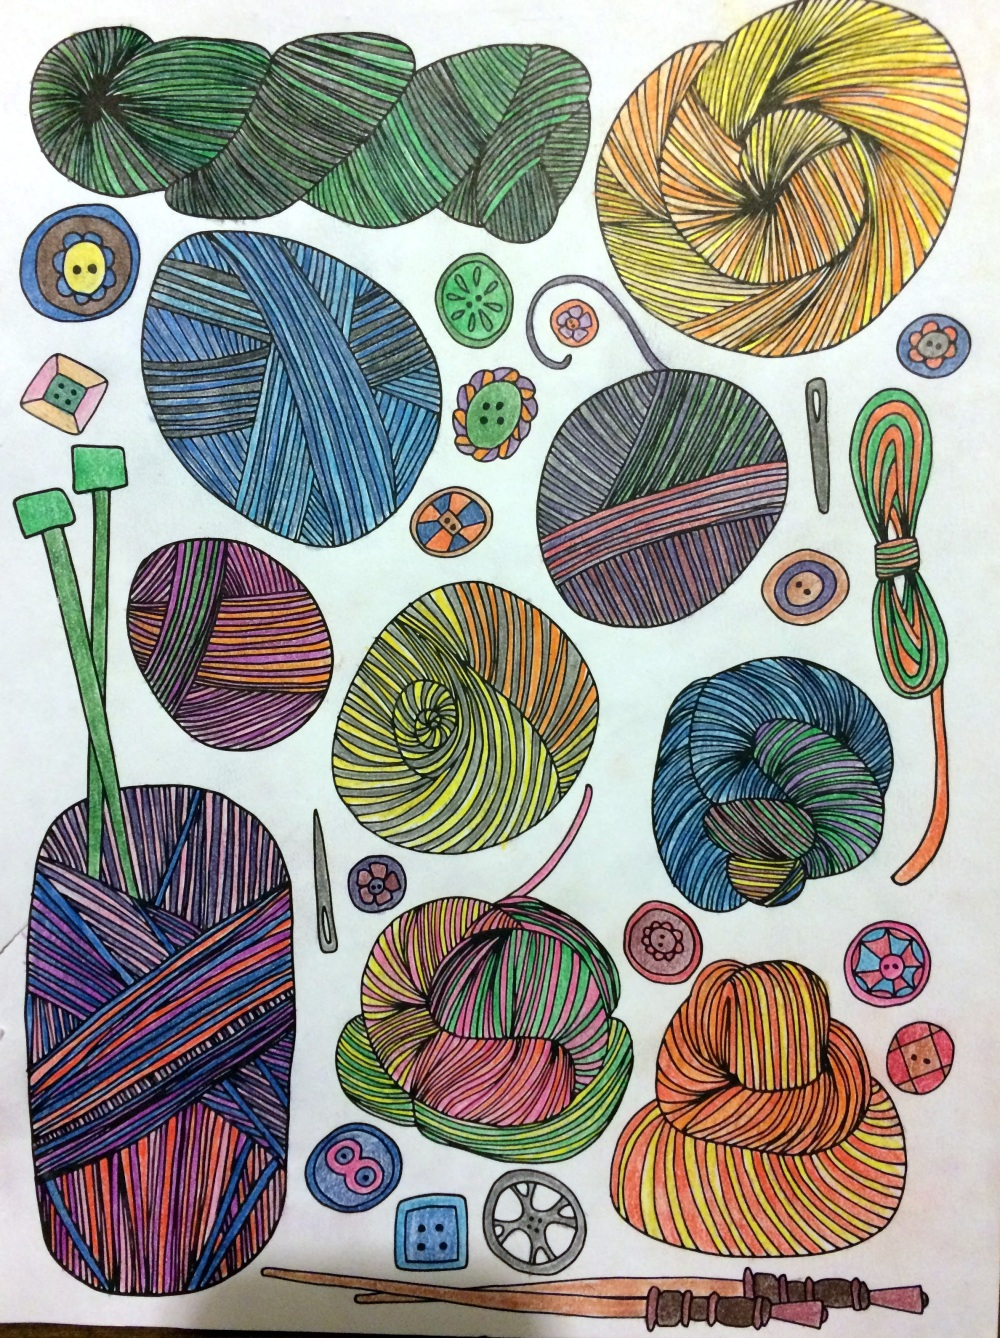 Yarn page from Taste of Home Winter 2017 adult coloring book